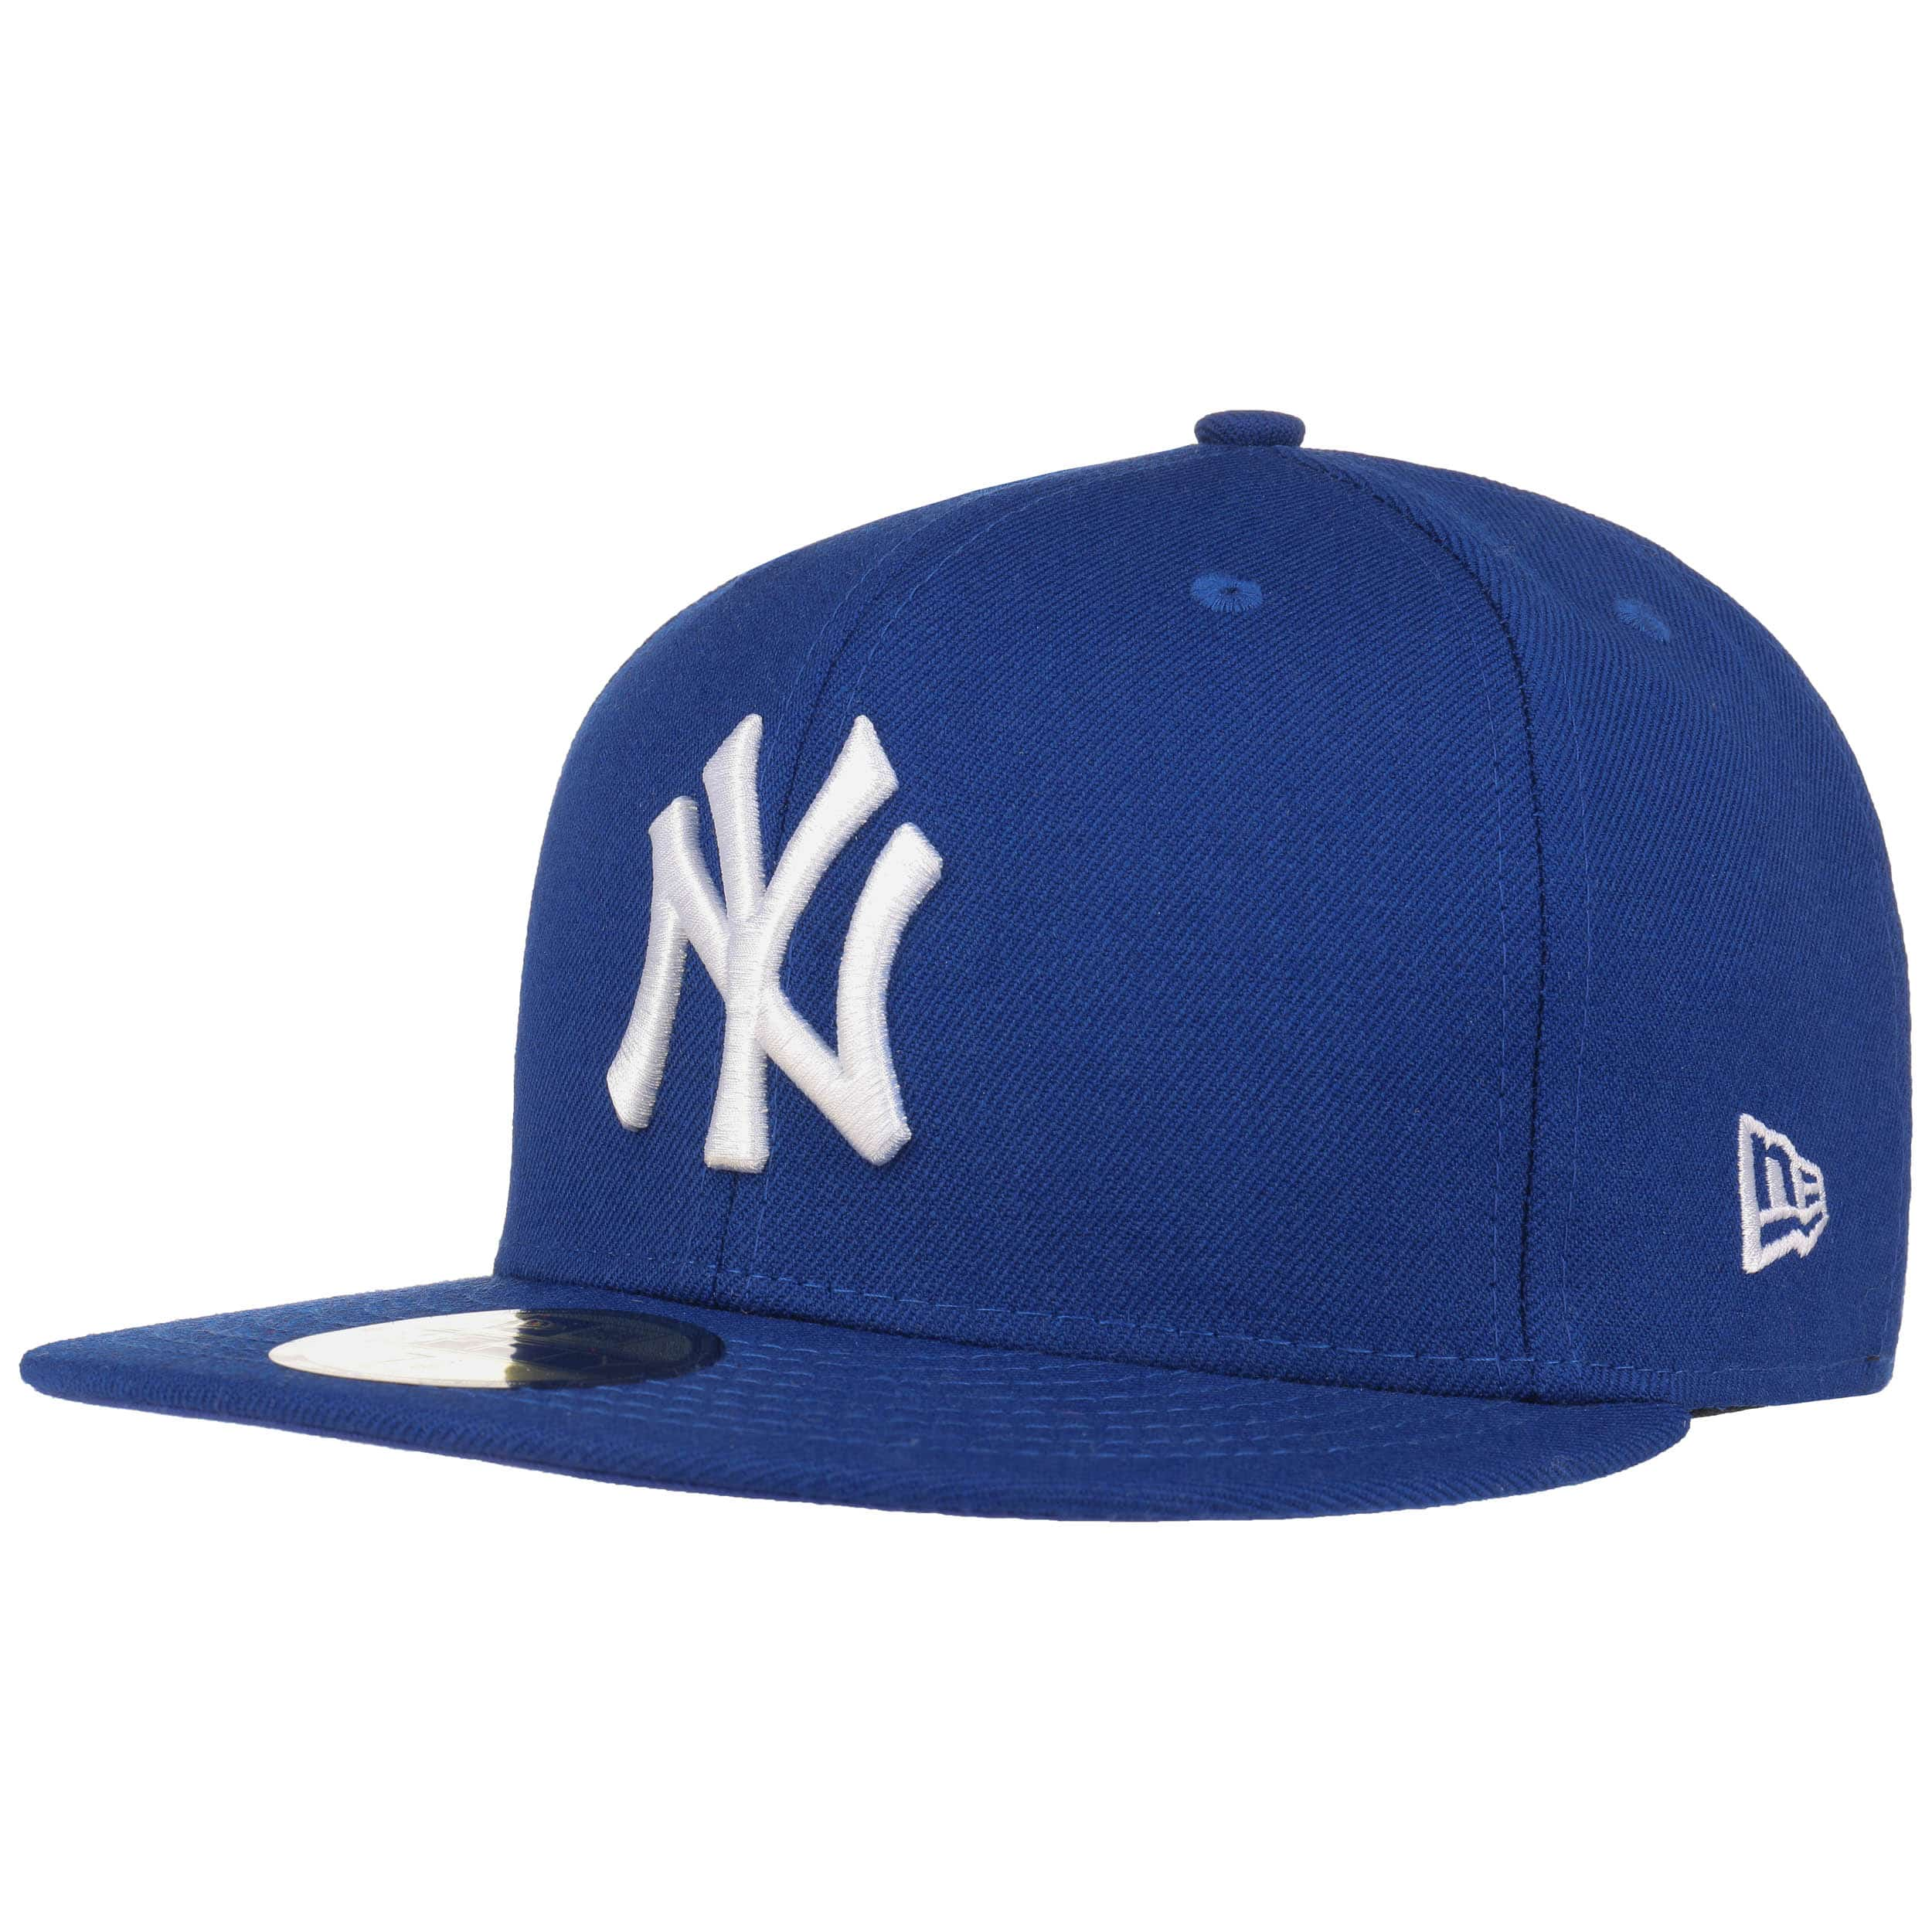 ... 59Fifty MLB Basic NY Cap by New Era - blue 7 ... dff3c42278b